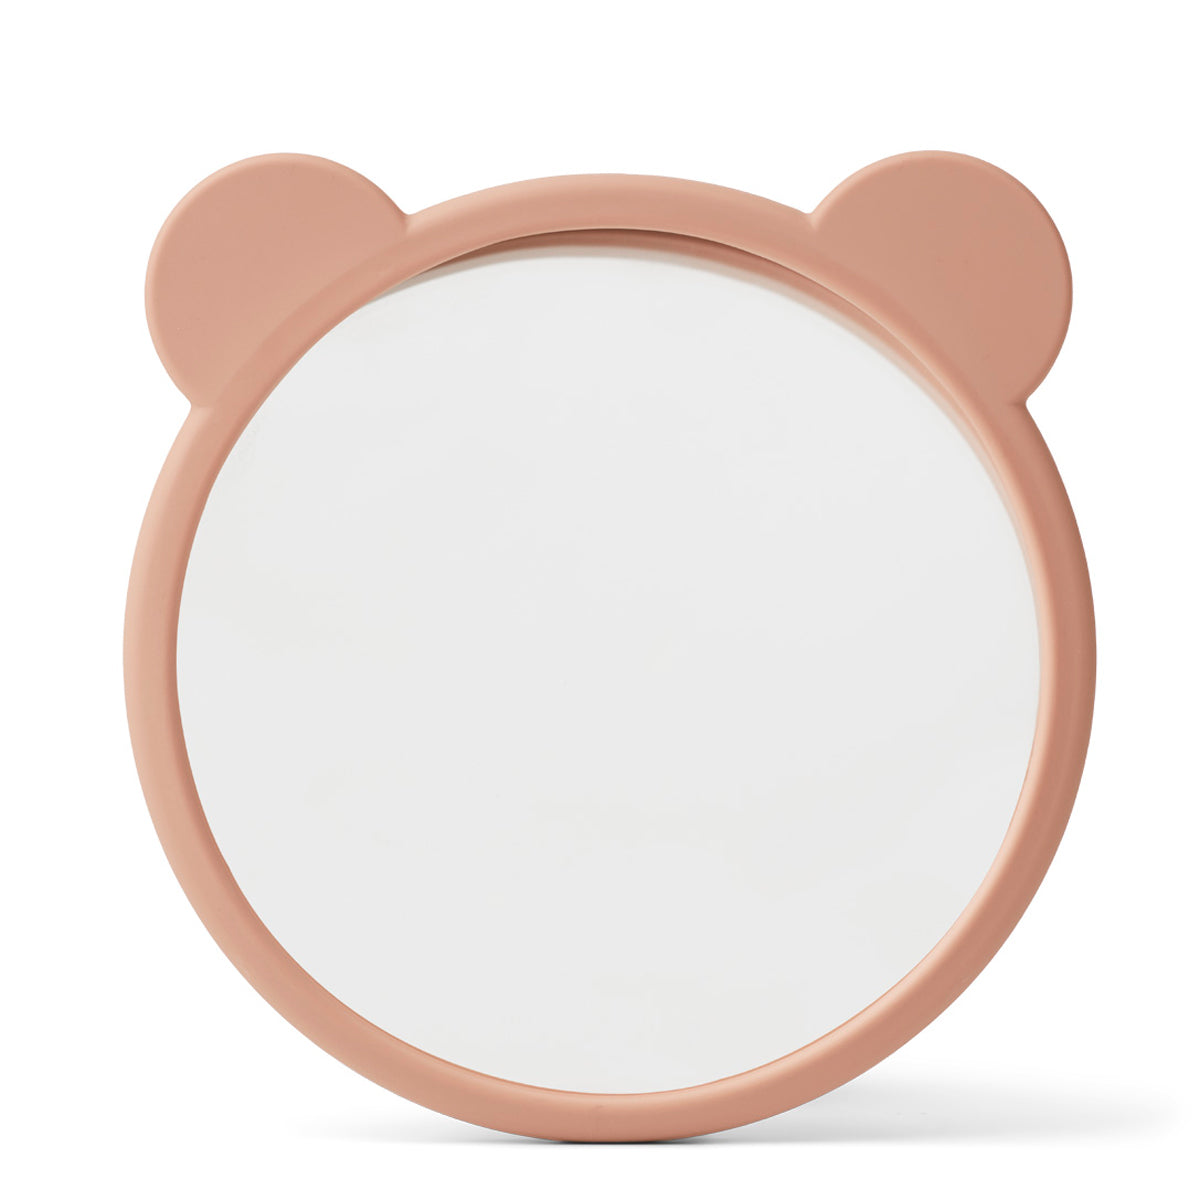 Liewood Heidi mirror - Dark rose